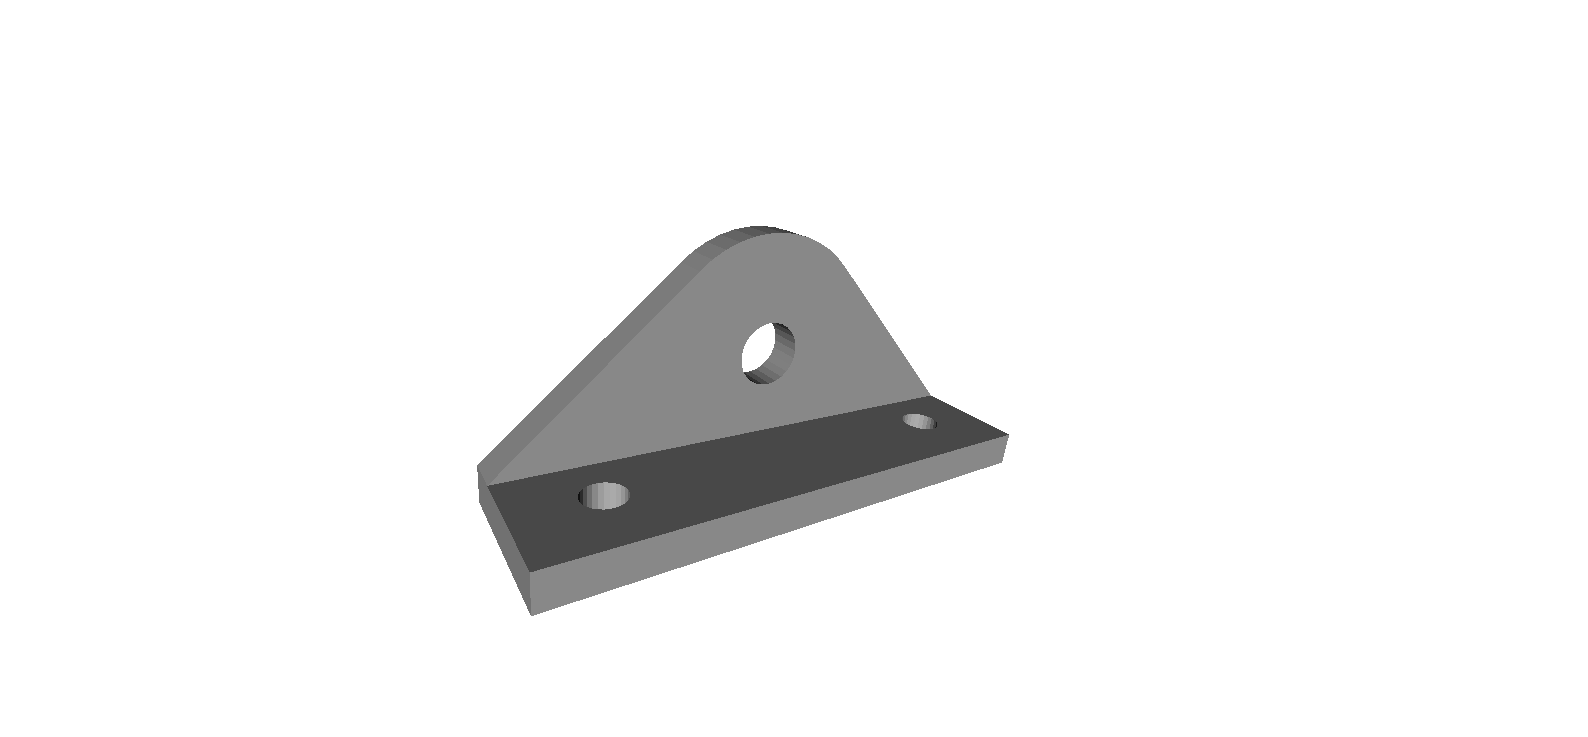 linear model/freecad/STLs/stepper bracket.png